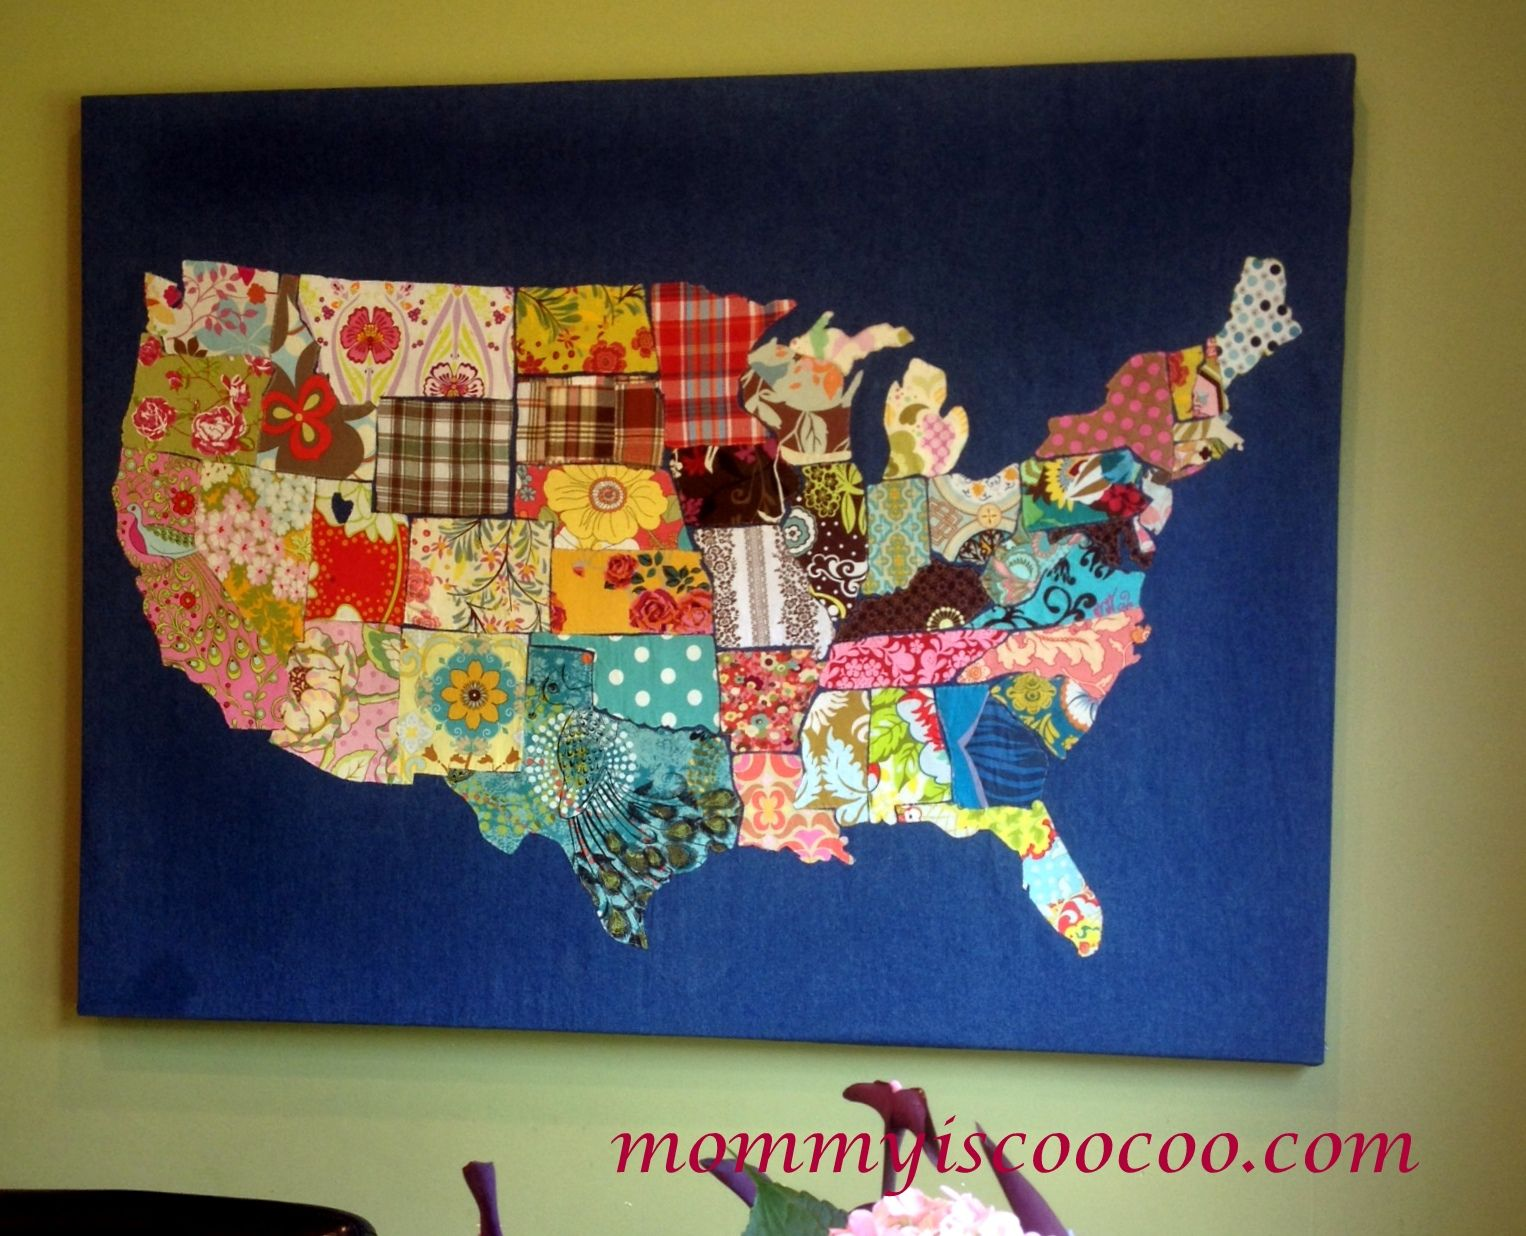 fabric usa map from mommyiscoocom so cool i think this would be